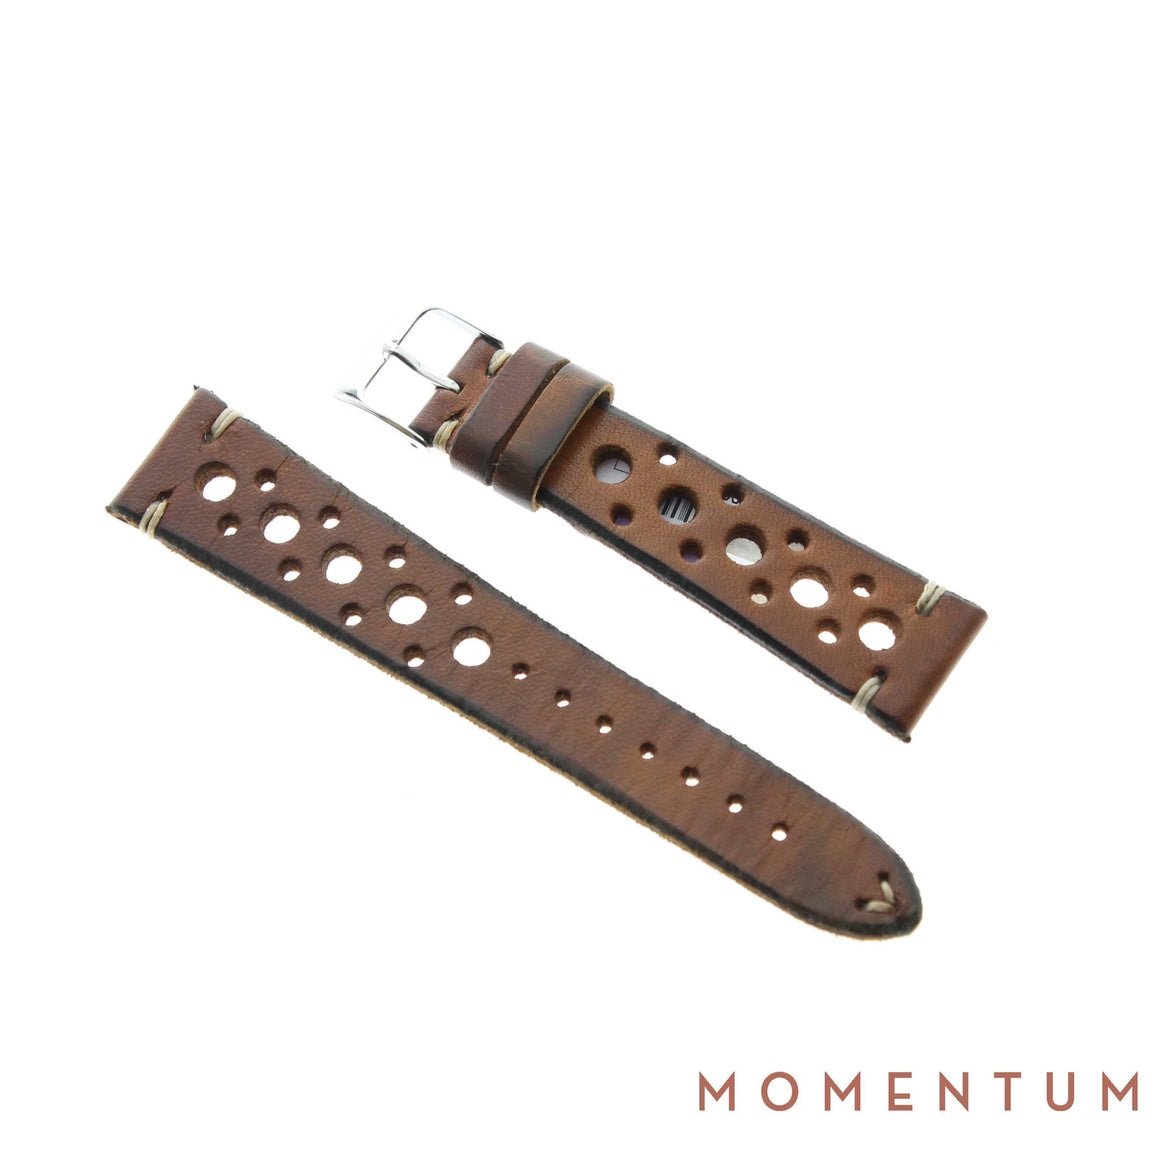 Vintage Strap - Beige Berluti style with holes - Calf Leather - Momentum Dubai